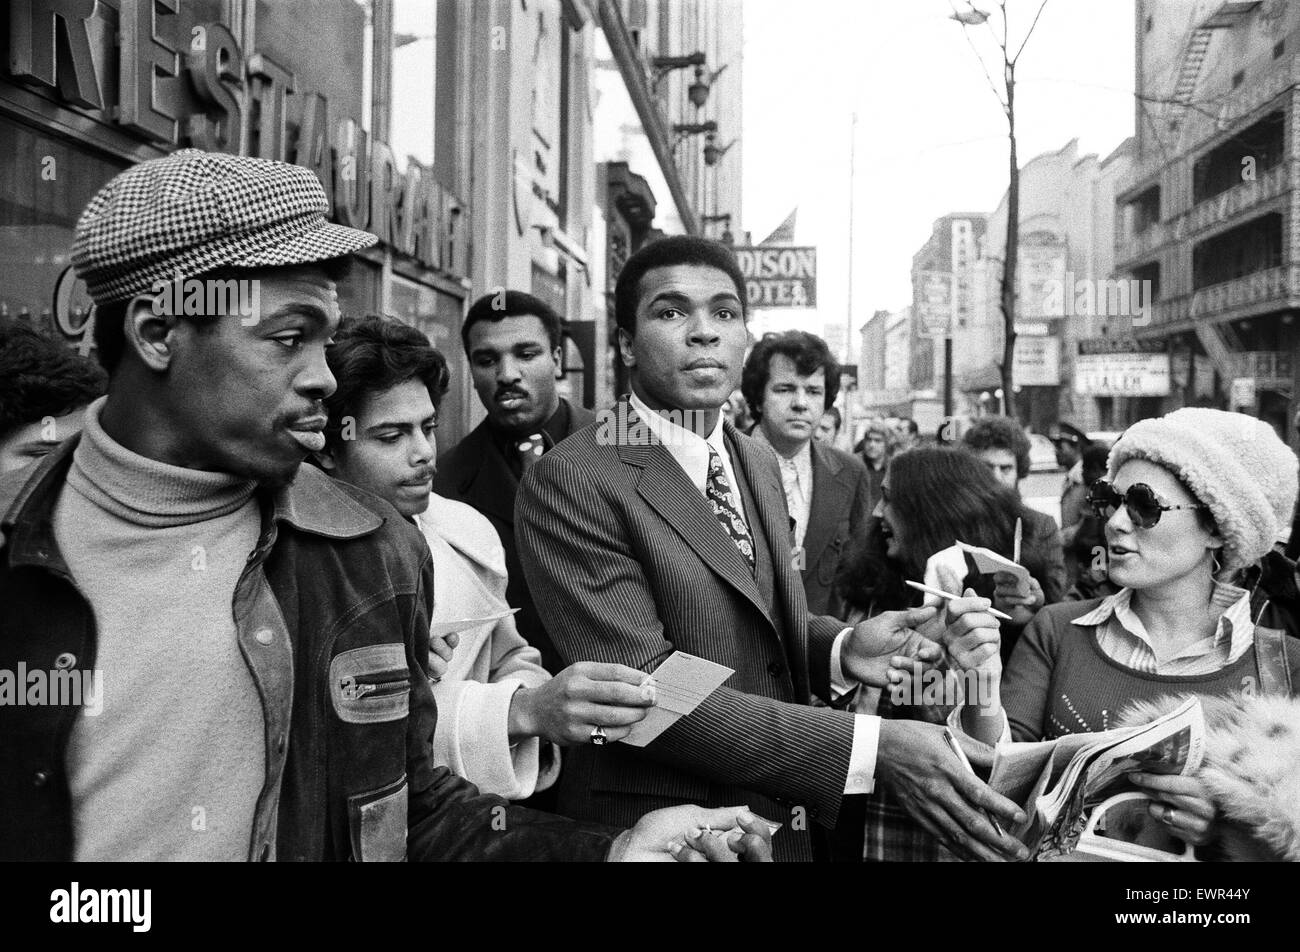 Muhammad Ali signing autographs ahead of his rematch with Joe Frazier. 23rd January 1974 - Stock Image